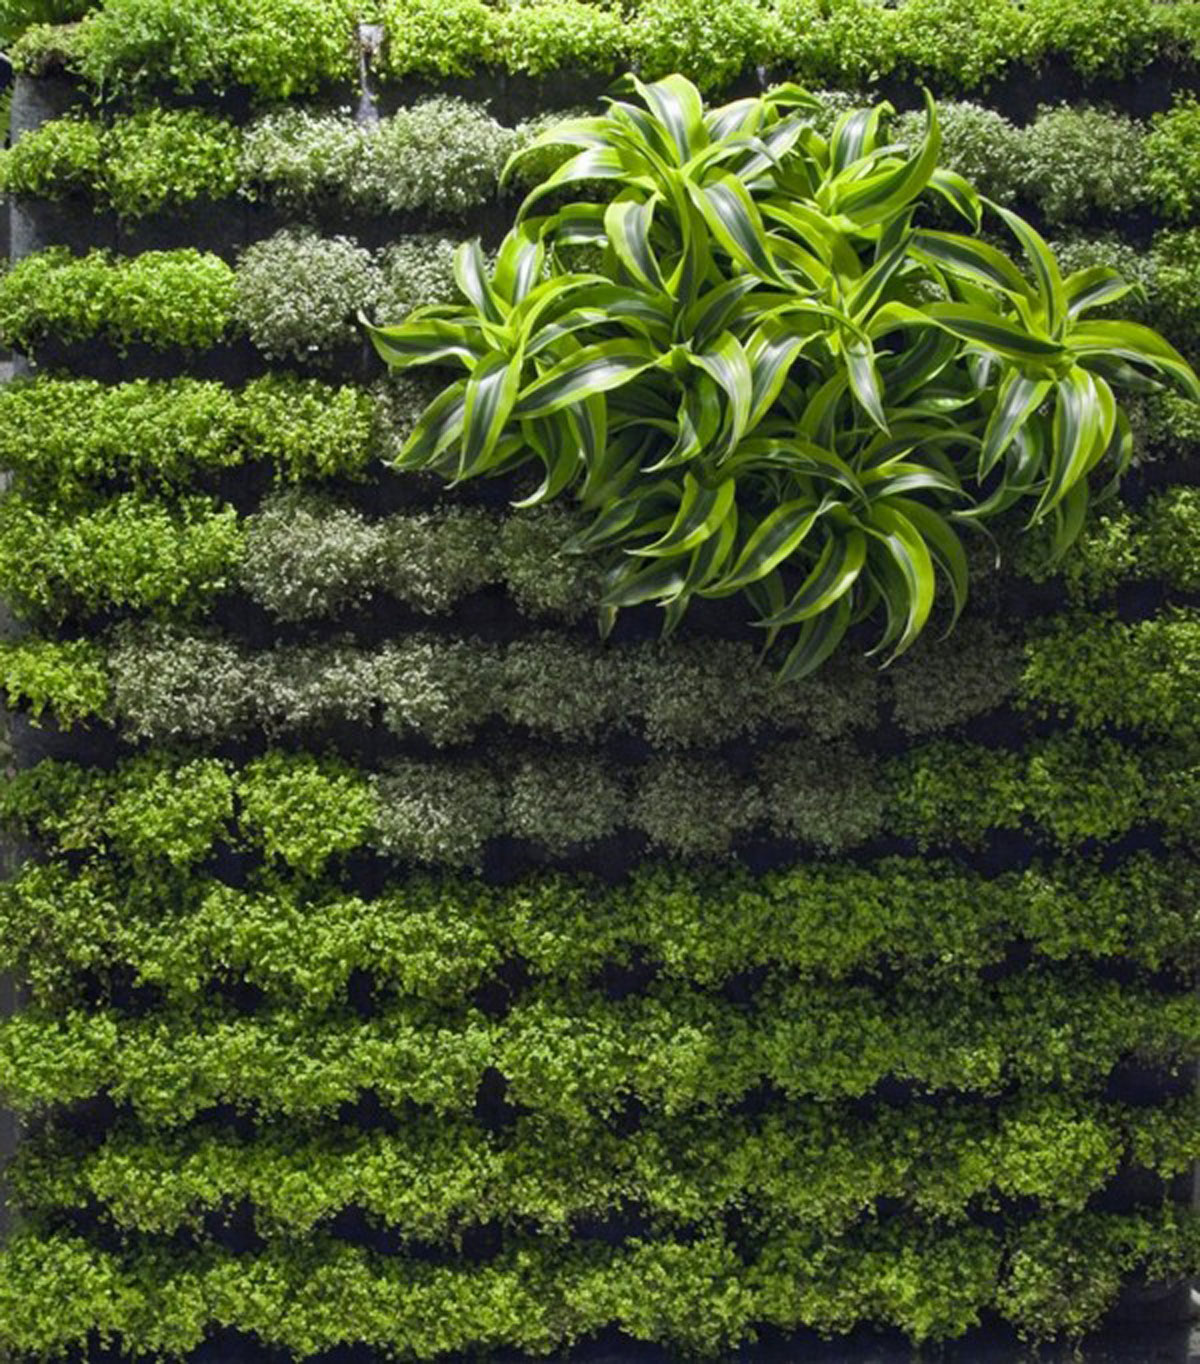 Applicative vertical garden designs for Images of garden designs